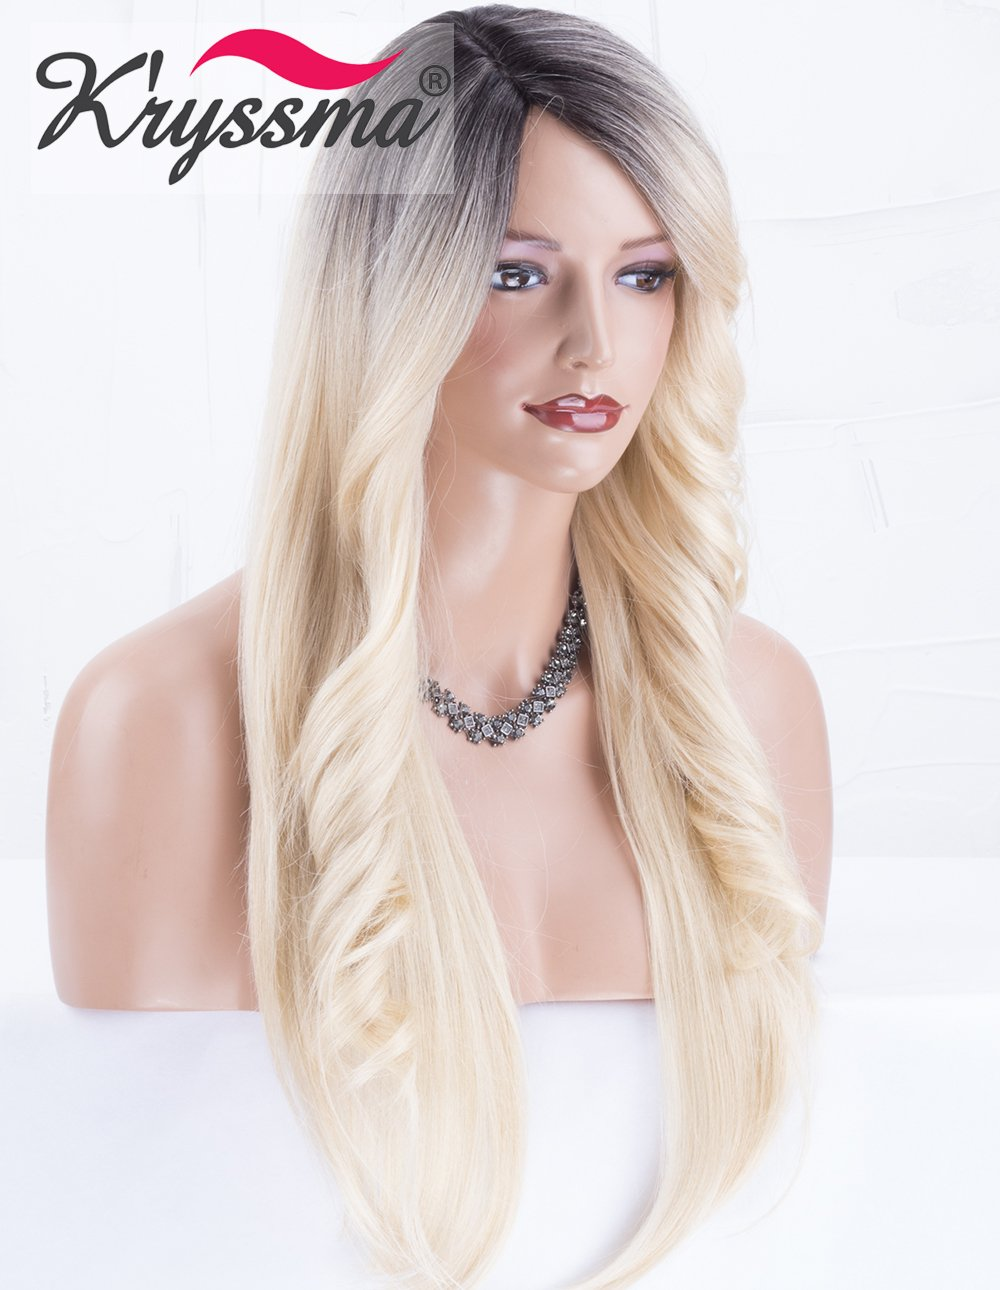 K ryssma Ombre Blonde Wig Dark Roots Long Natural Straight Synthetic Wigs  with Wavy Bangs. 09a77a5f31